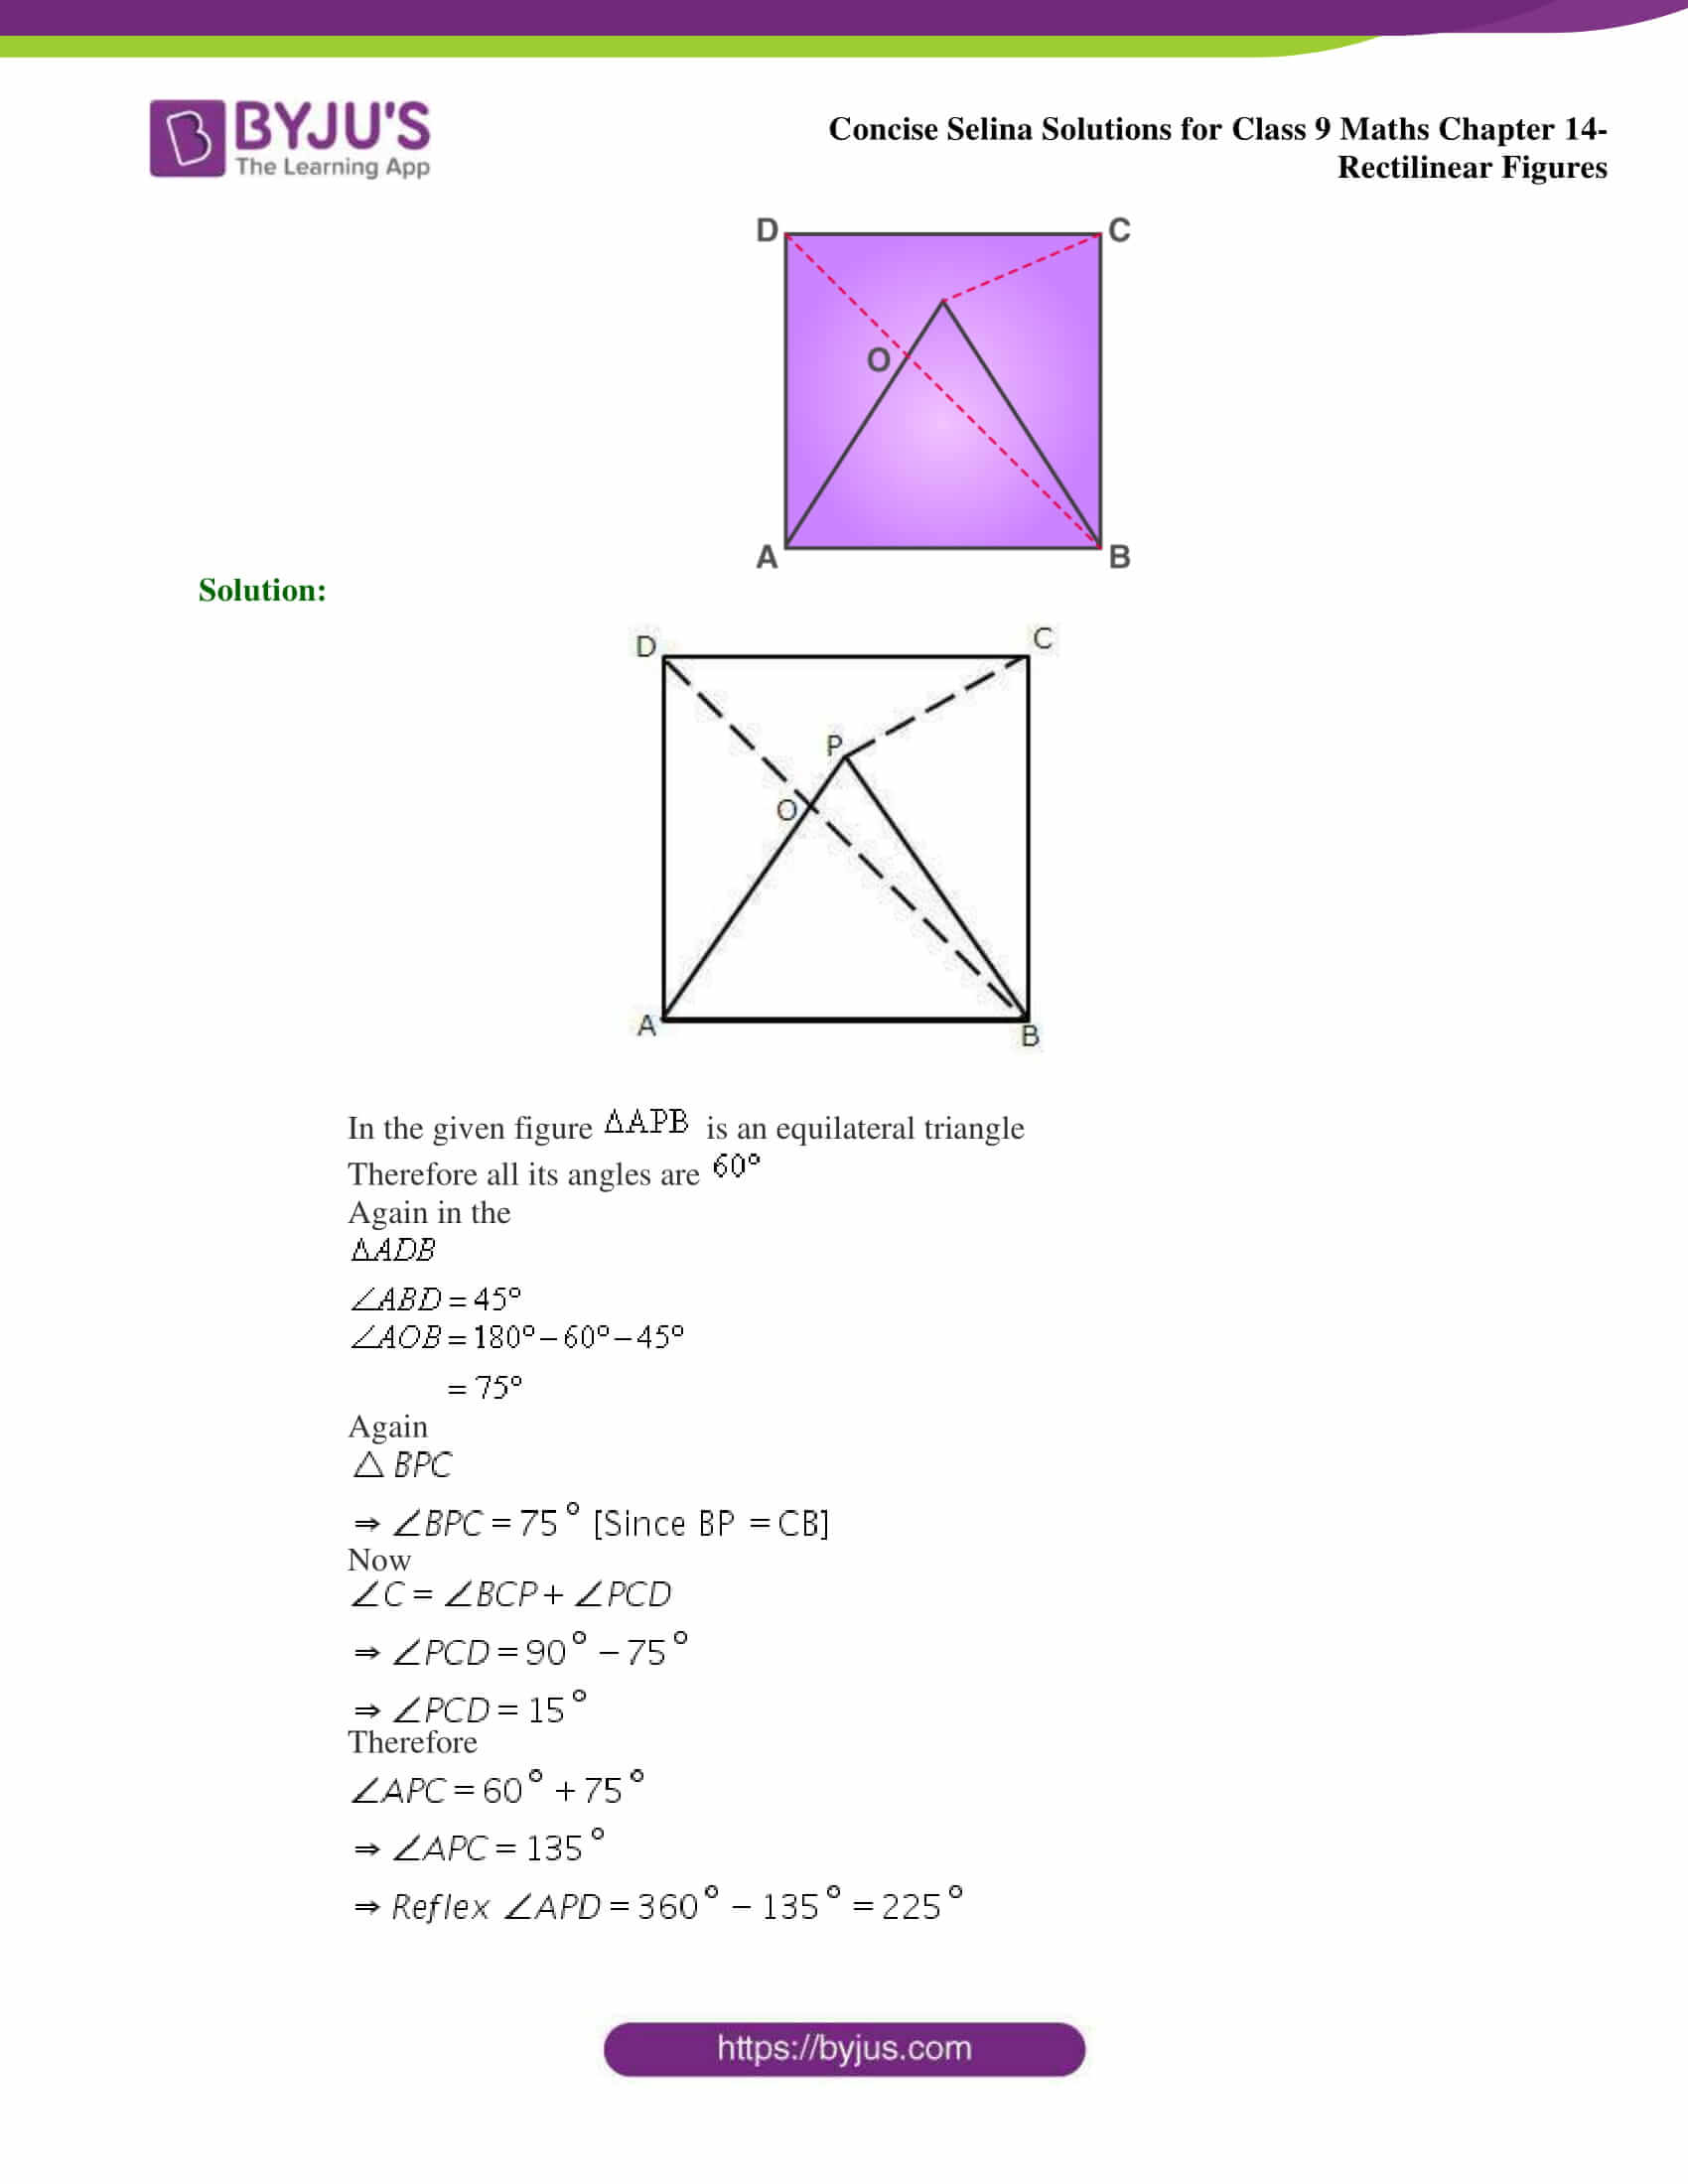 selina Solutions for Class 9 Maths Chapter 14 part 11